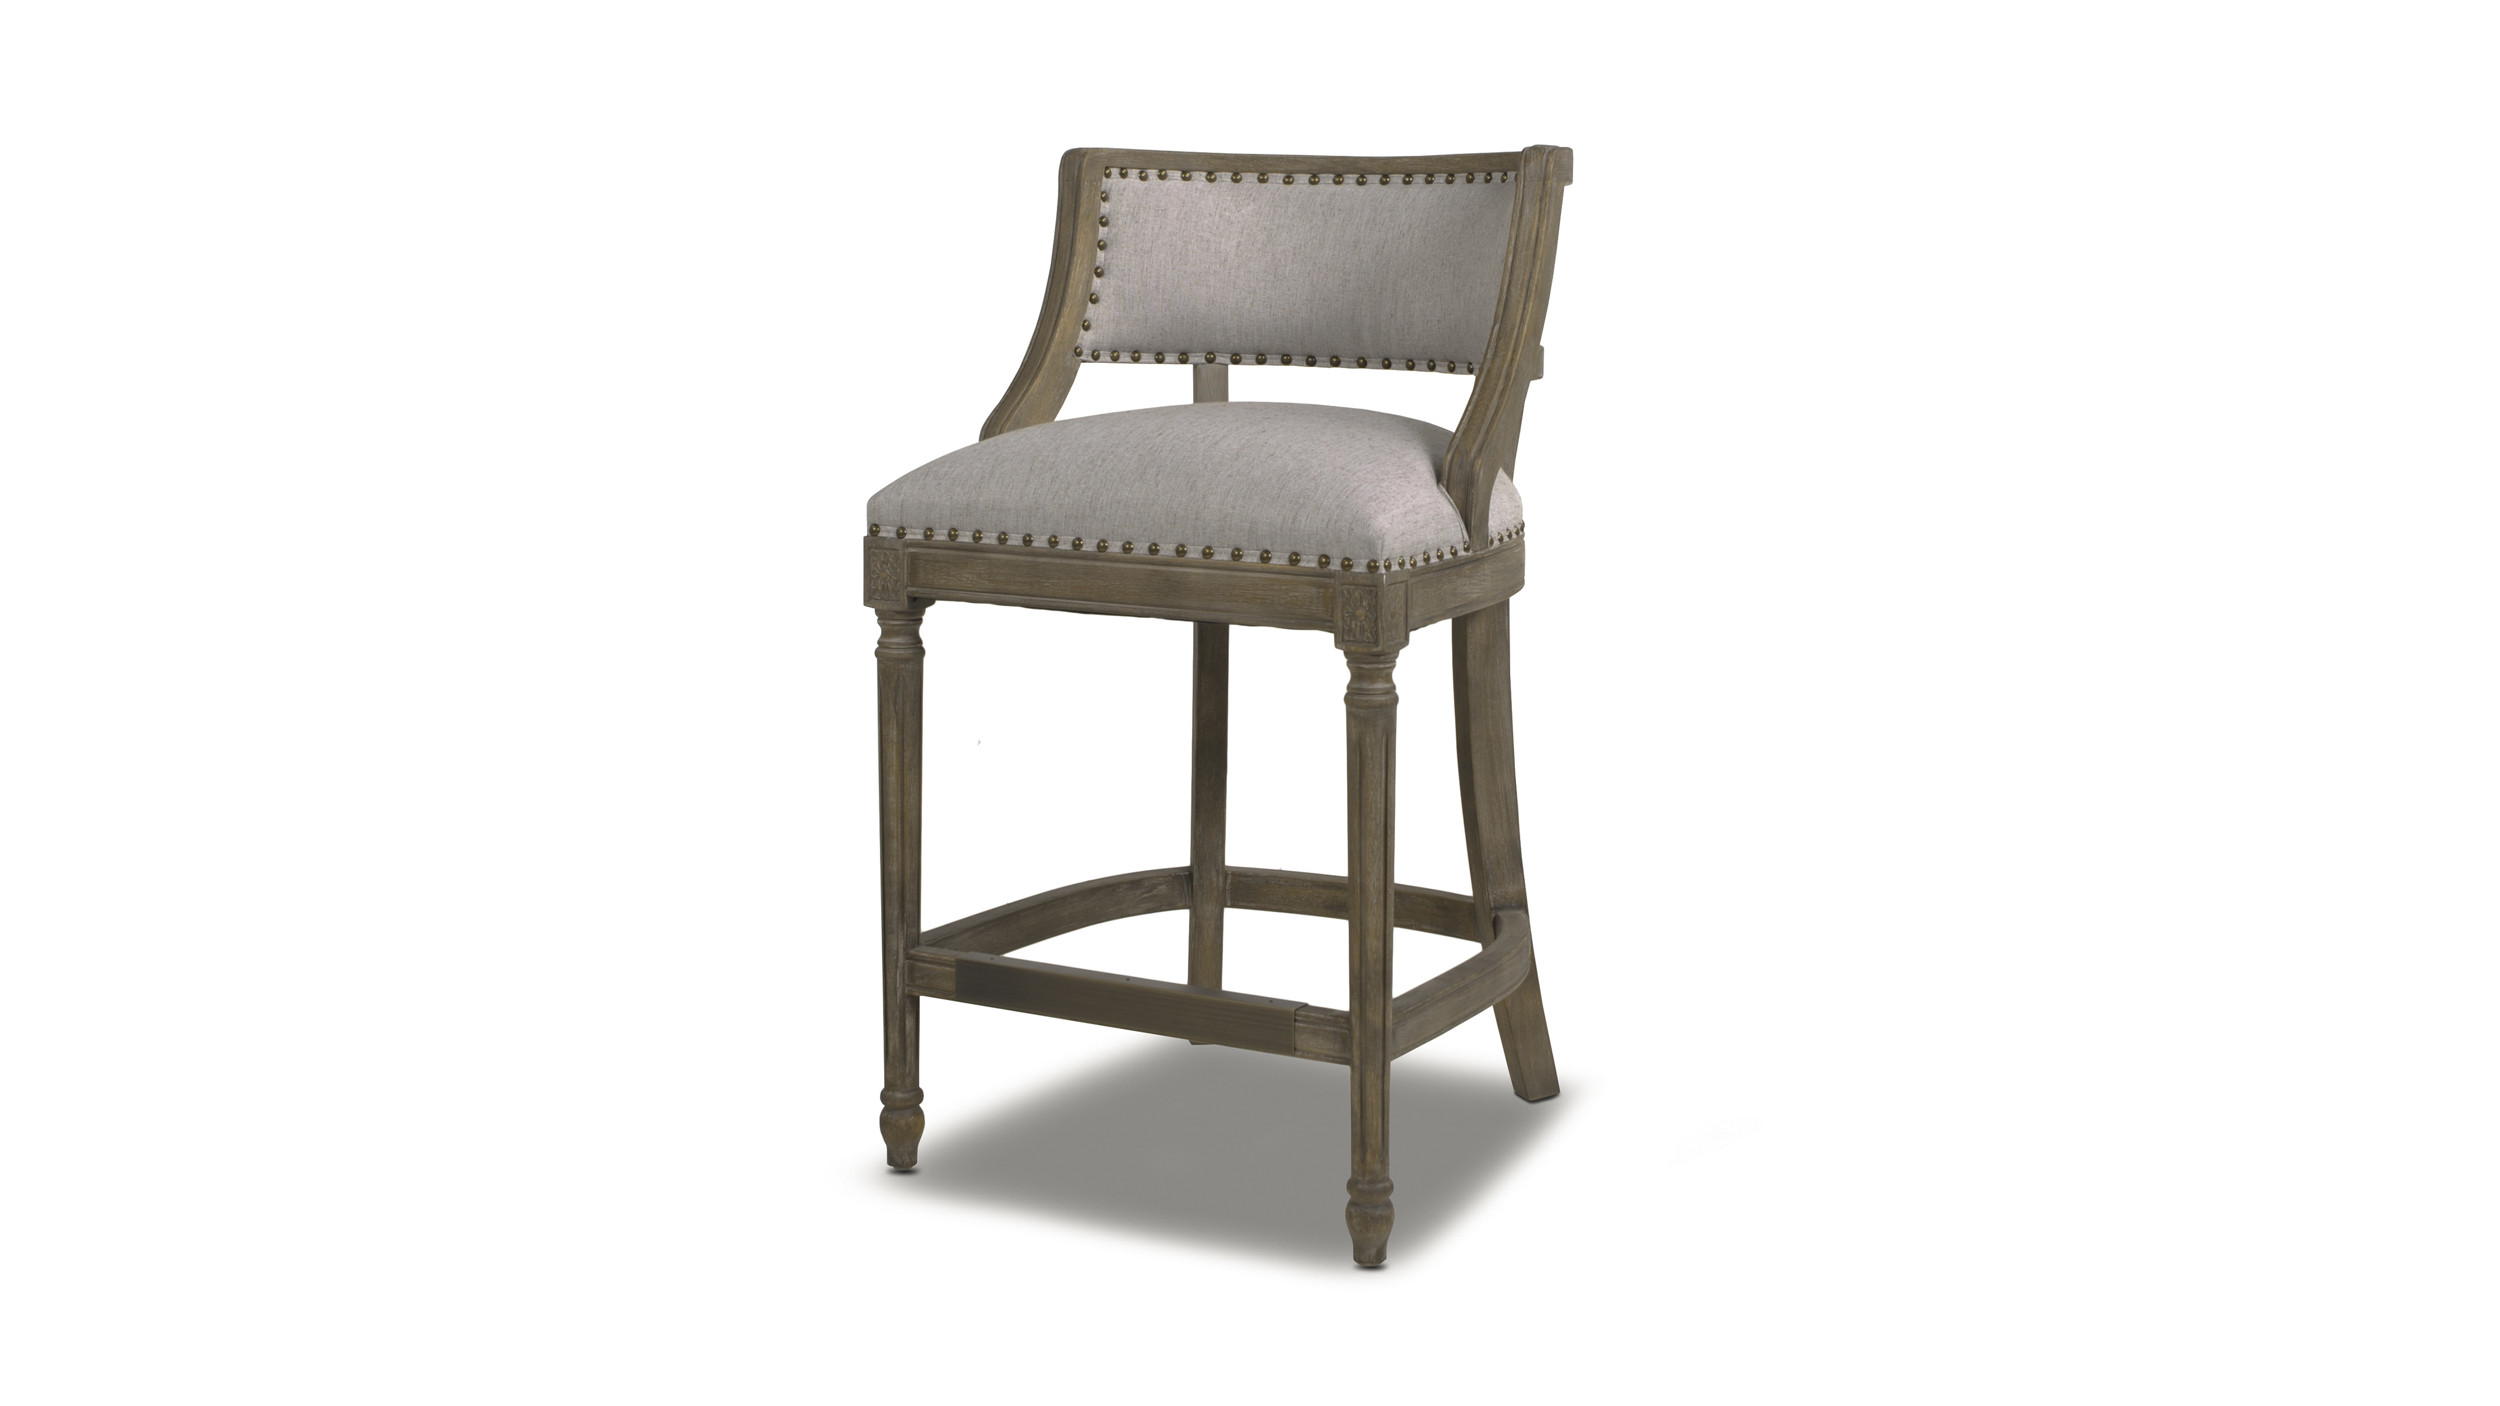 Paris 26 Farmhouse Counter Height Bar Stool With Backrest Light Heathered Grey Jennifer Taylor Home